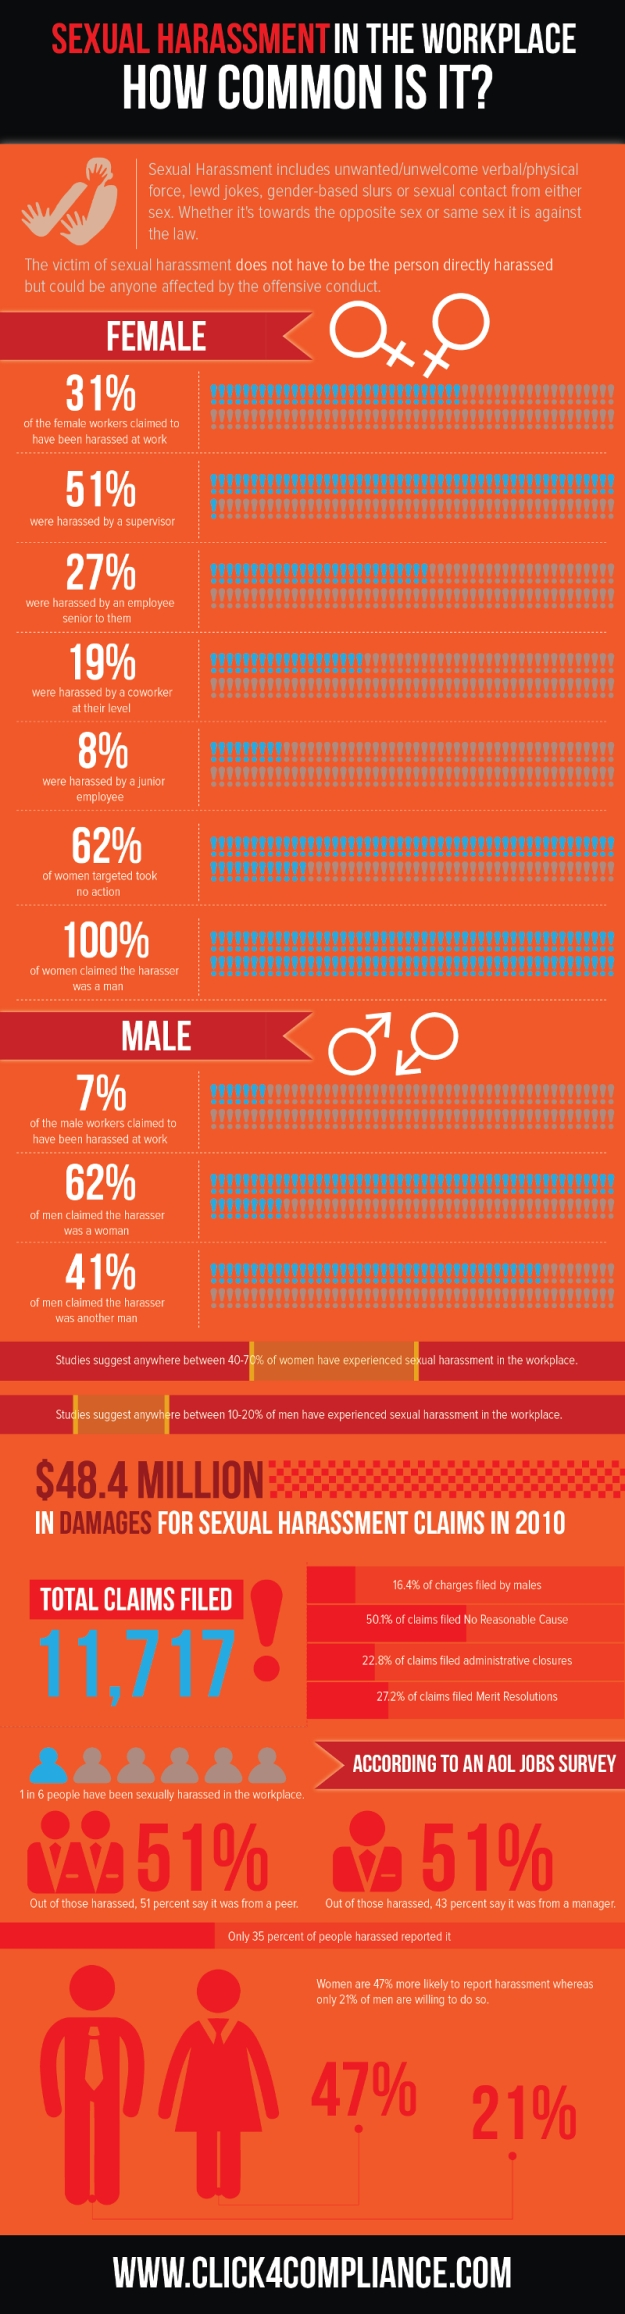 Sexual-Harassment-in-the-Workplace-Statistics